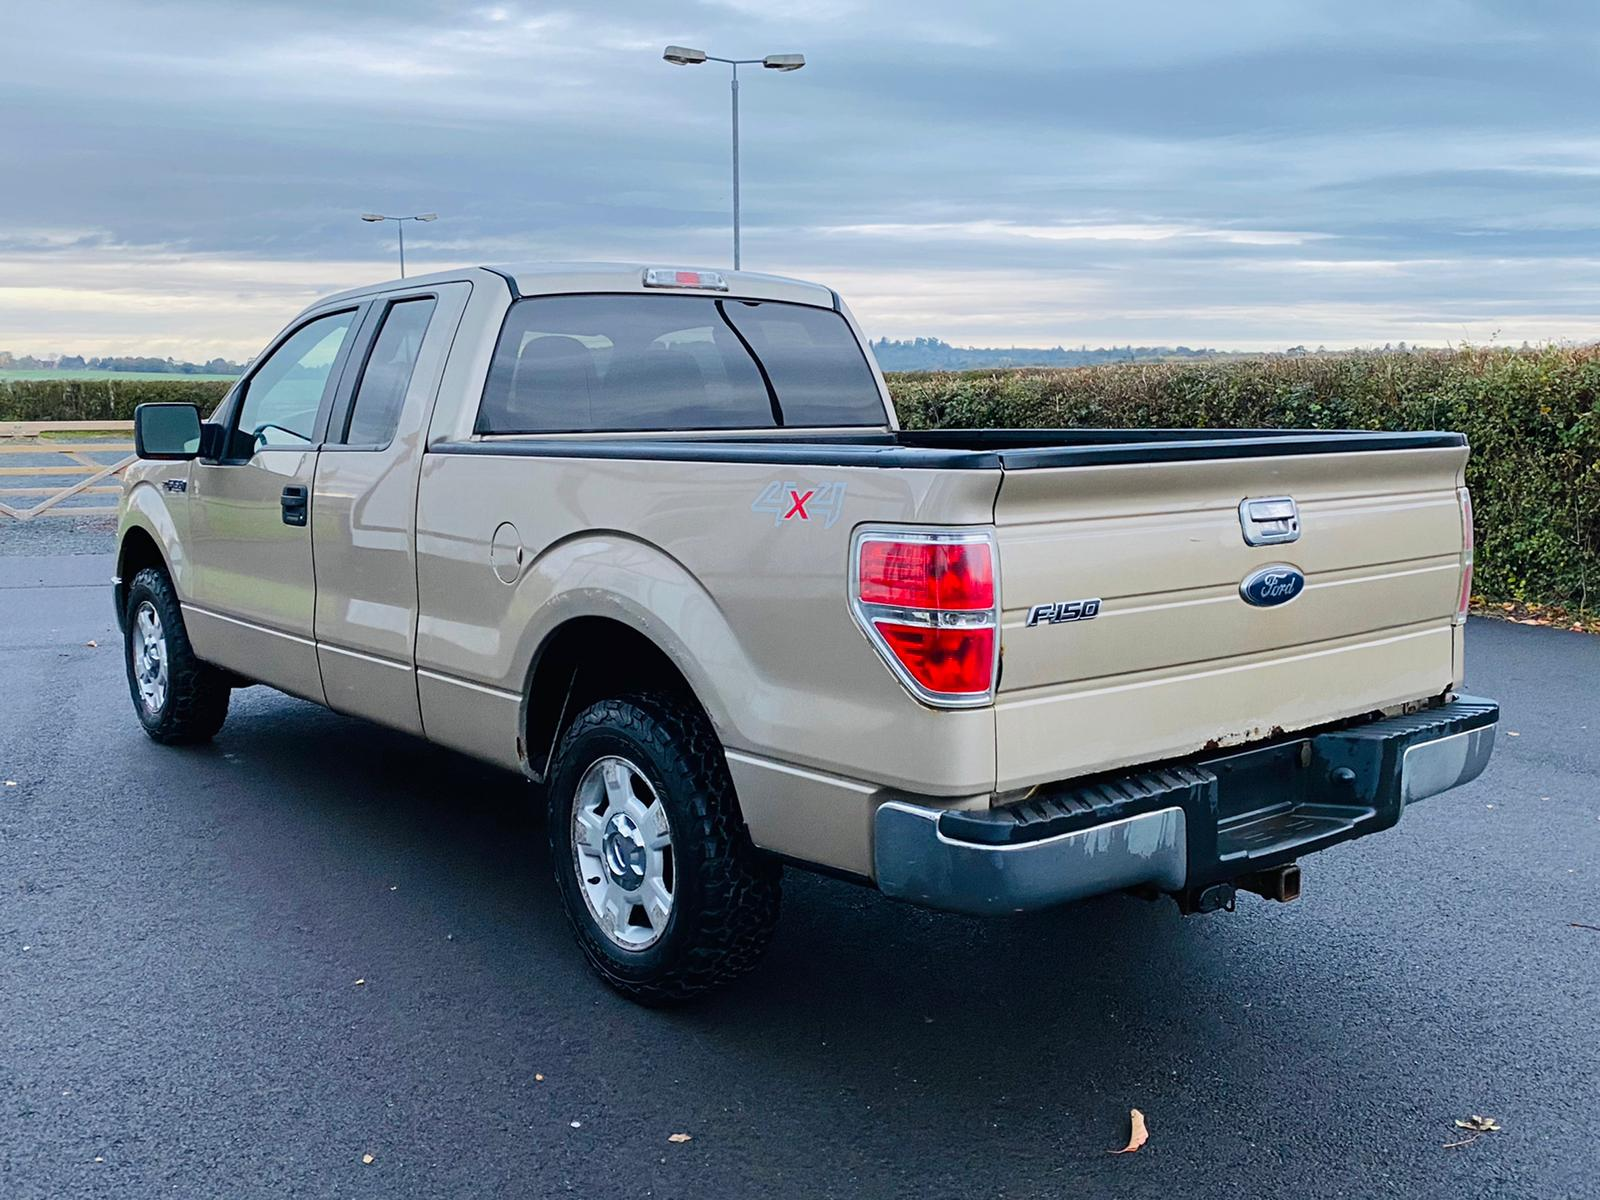 (RESERVE MET) Ford F-150 XLT 4.6L V8 Supercab - 2010 Year - 6 Seats - Fresh Imports - Image 14 of 39